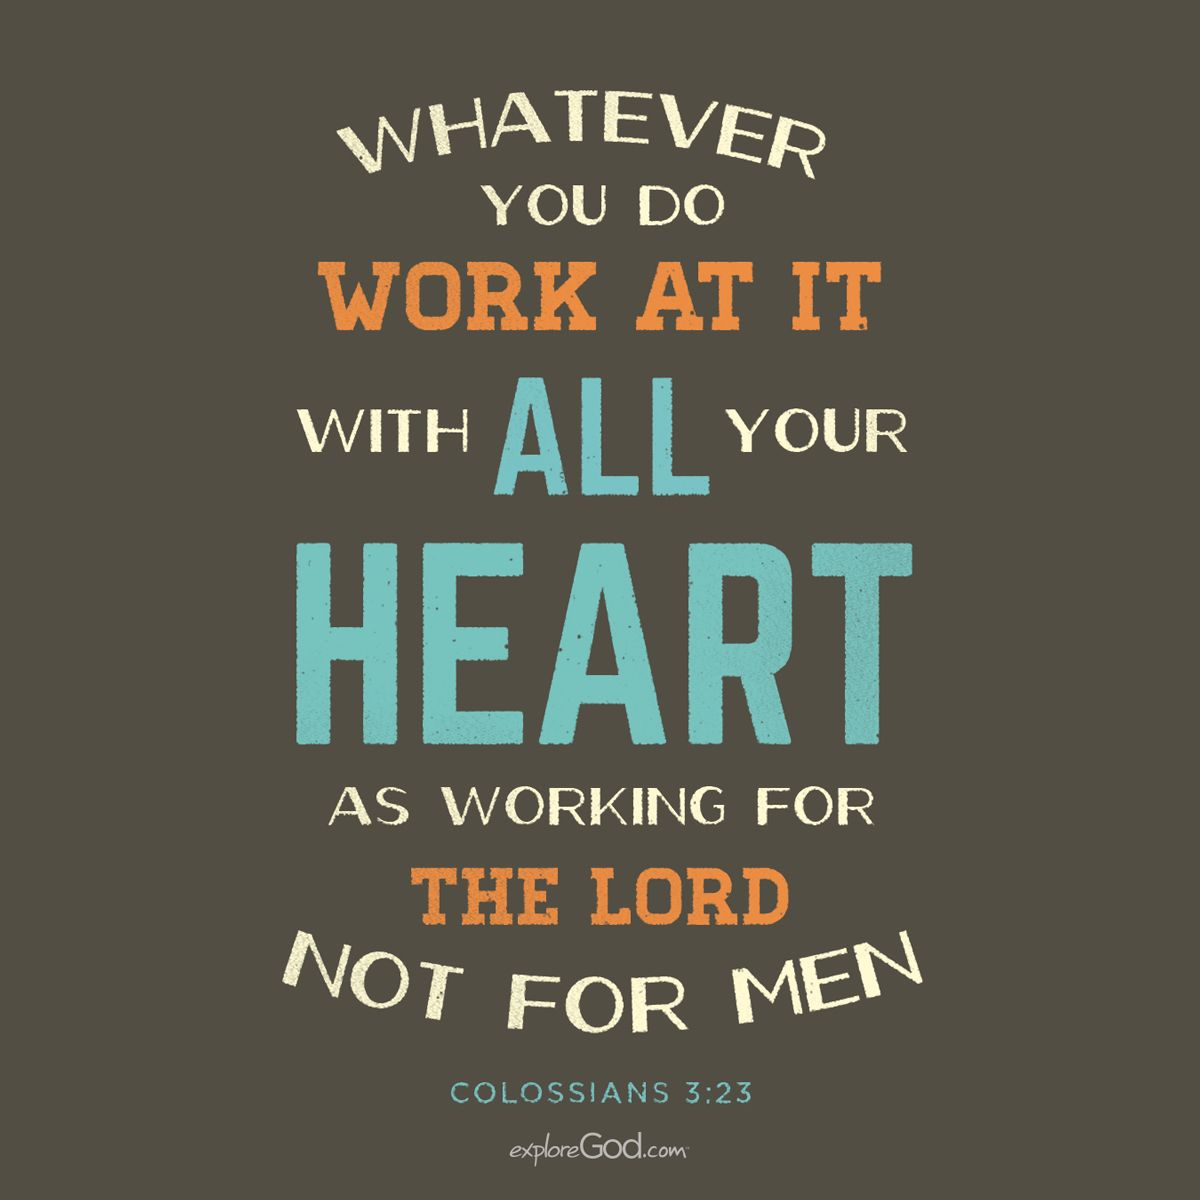 Image result for whatever you do work at it with all your heart as working for the lord